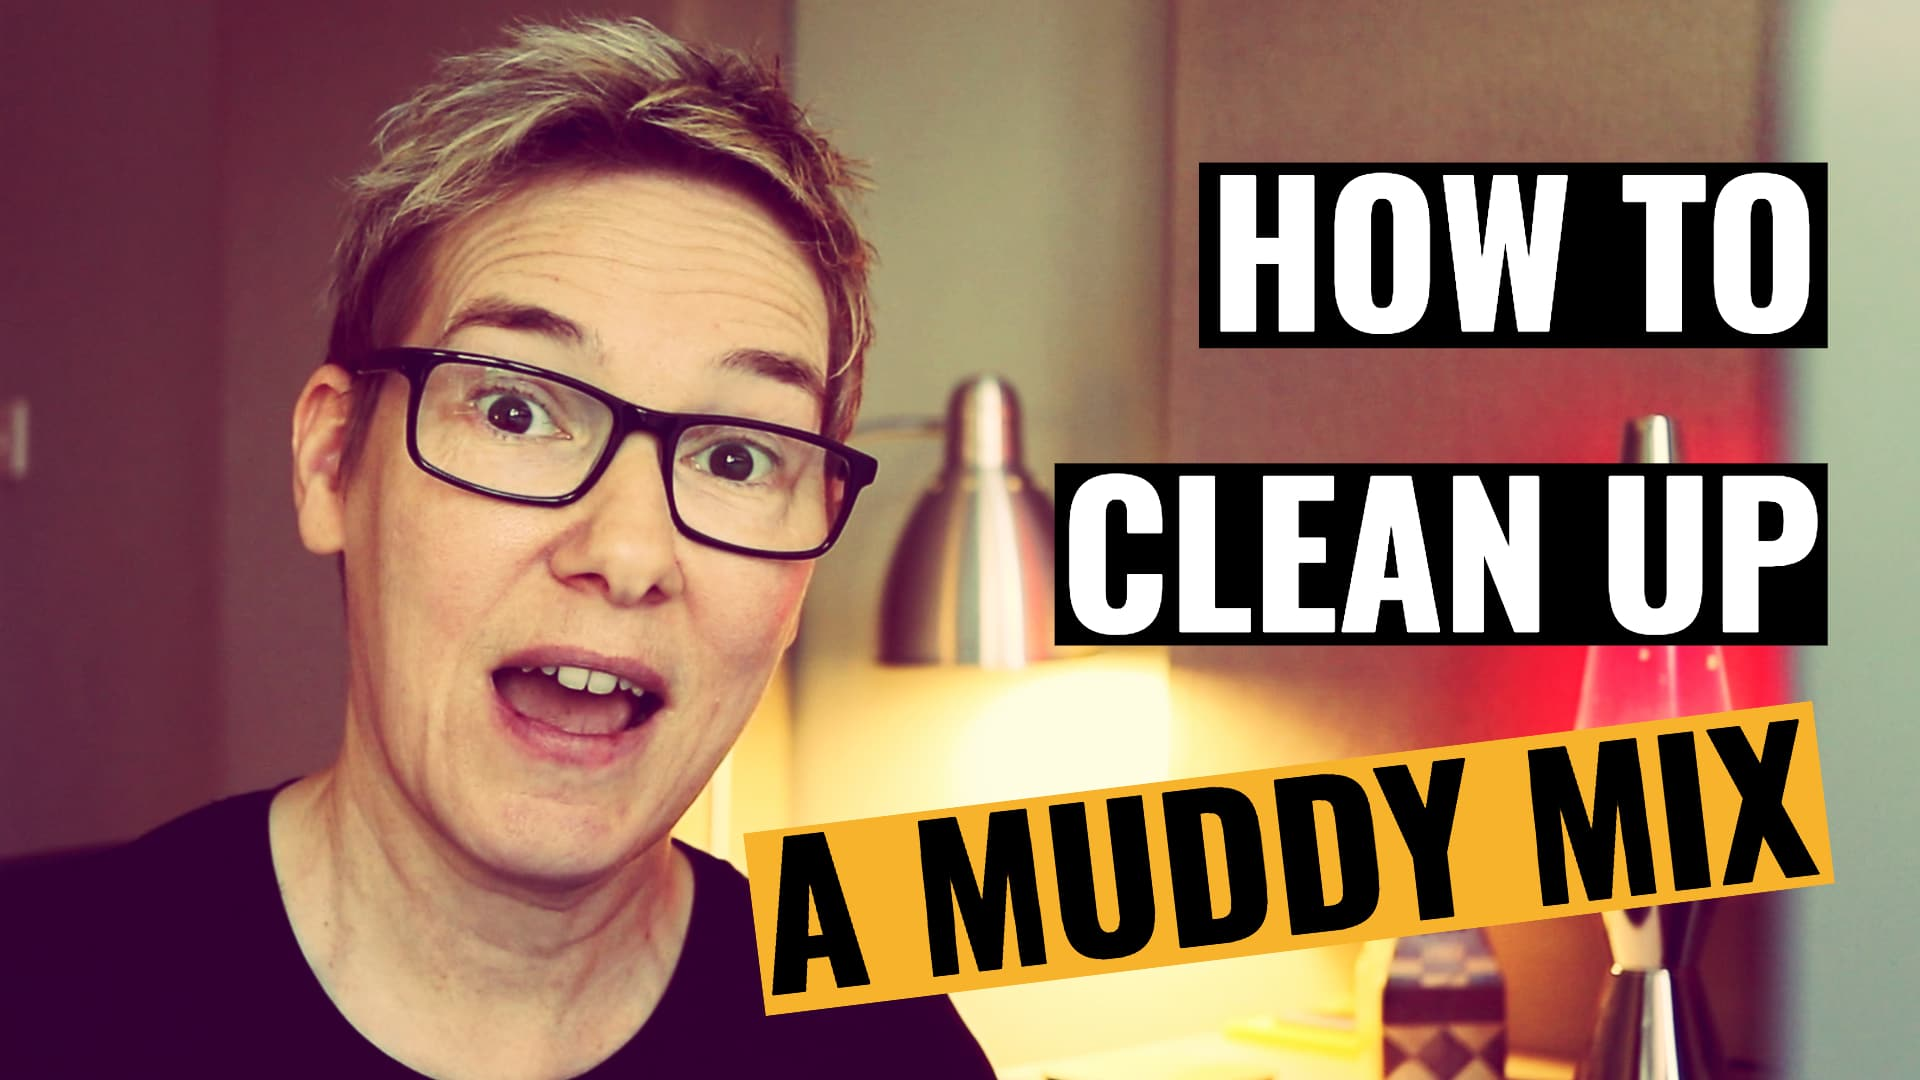 how to clean up a muddy mix